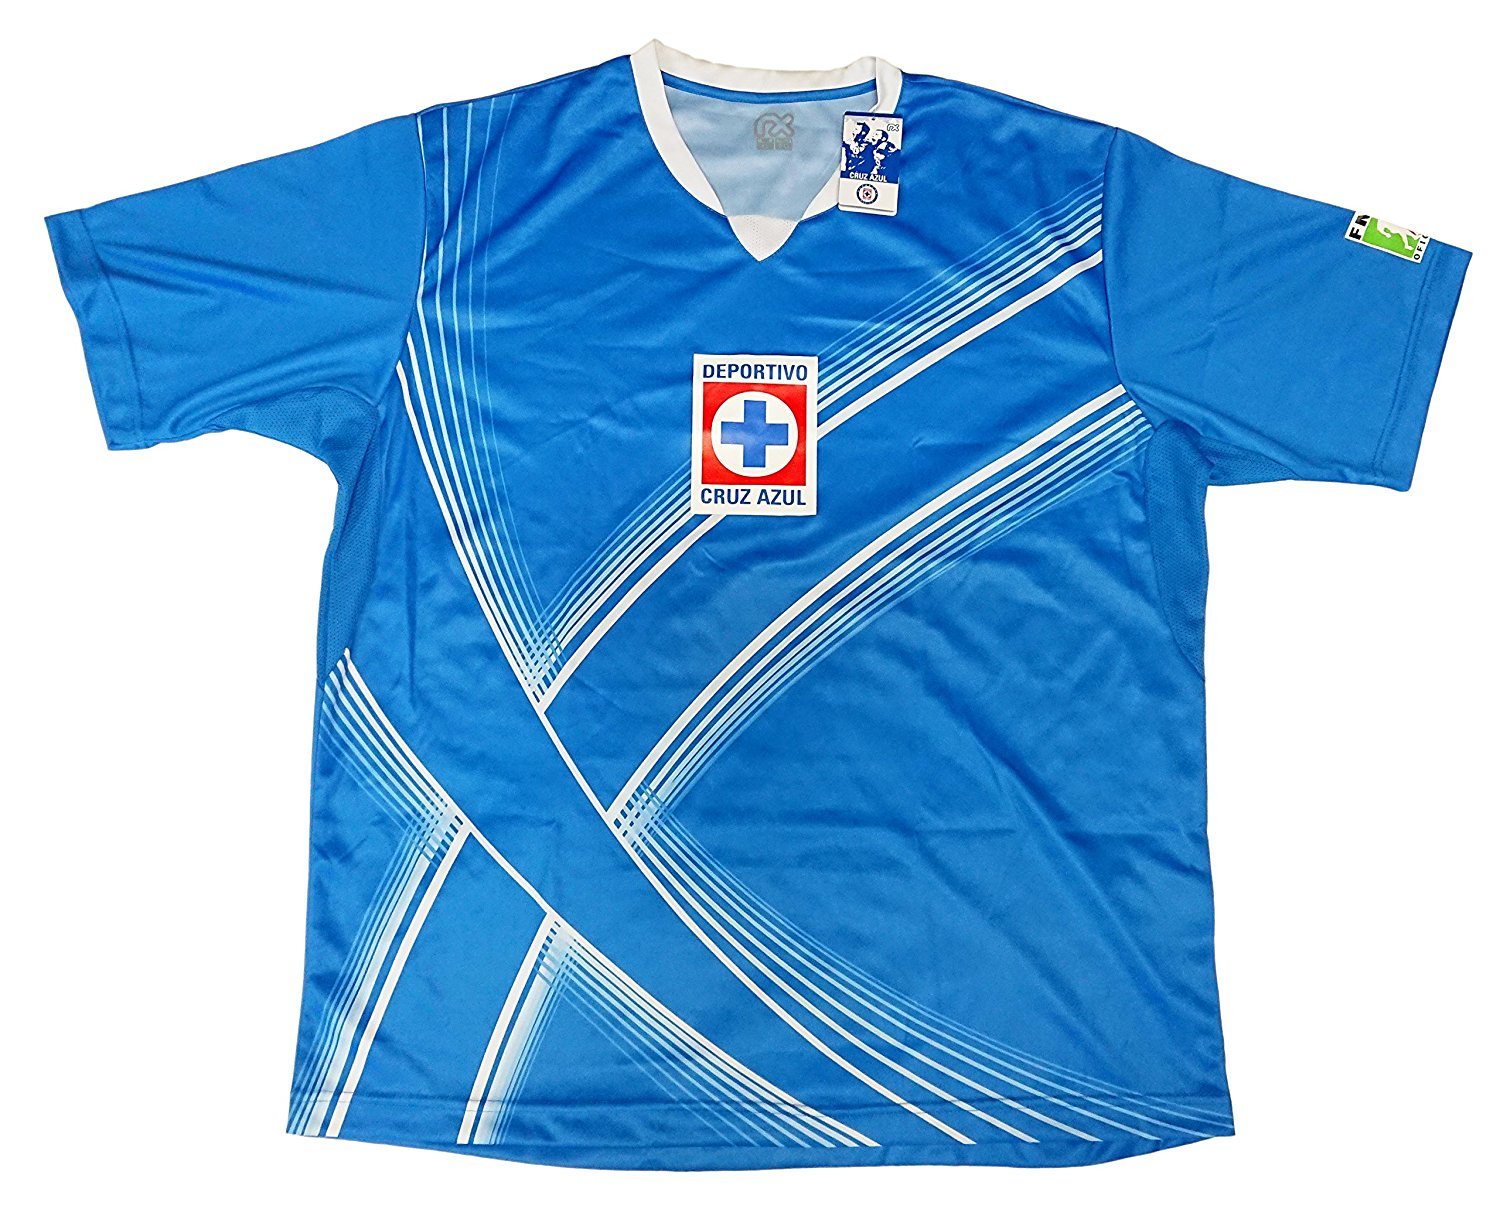 5b650edf Get Quotations · Cruz Azul Jersey Official Licensed by Rhinox Jersey